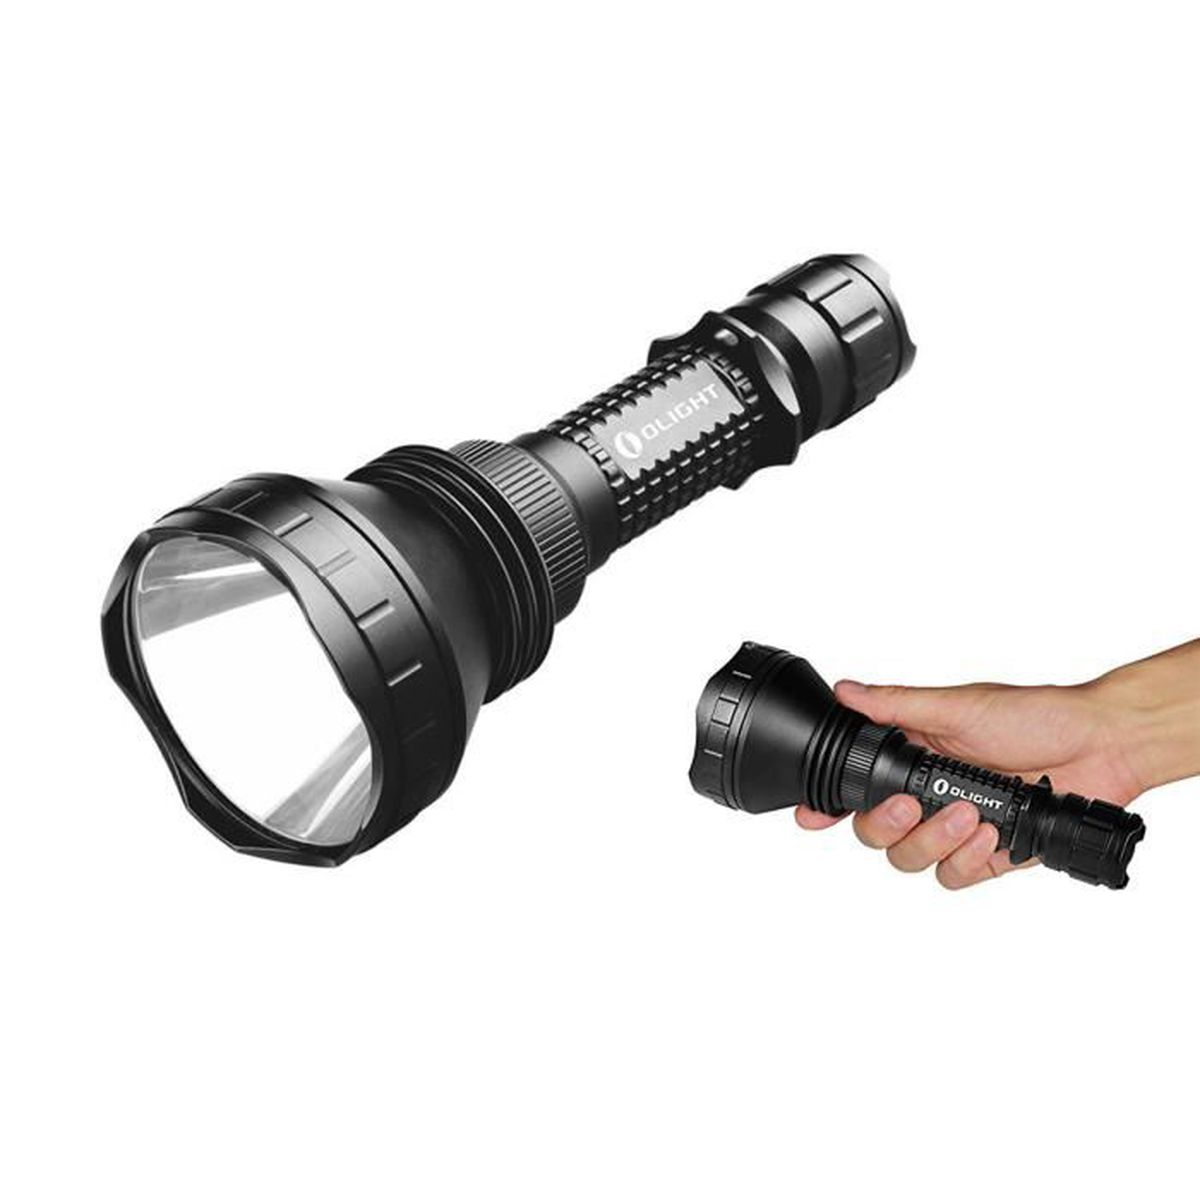 Olight® M2x Puissante Javelot Lampe Tactique Torche Led Ultra Ut 6fgyYb7